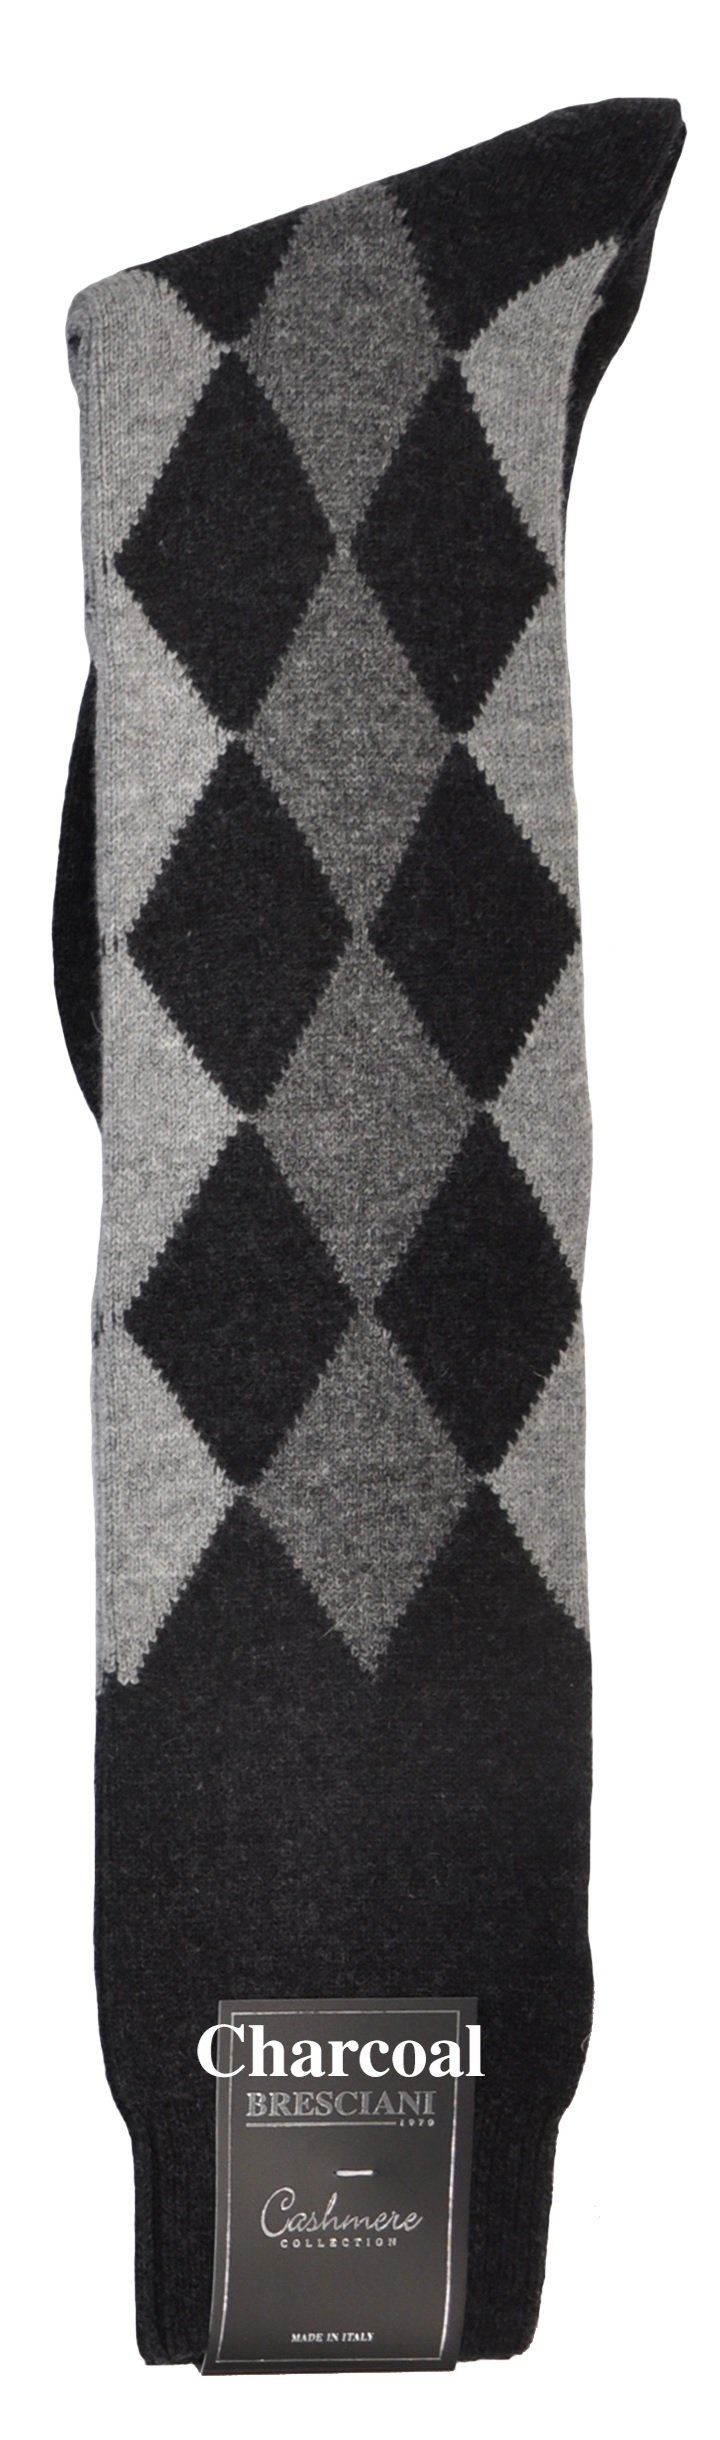 Pure Cashmere Argyle Harlequin-Diamond Knee High Socks - One Pair Charcoal Large